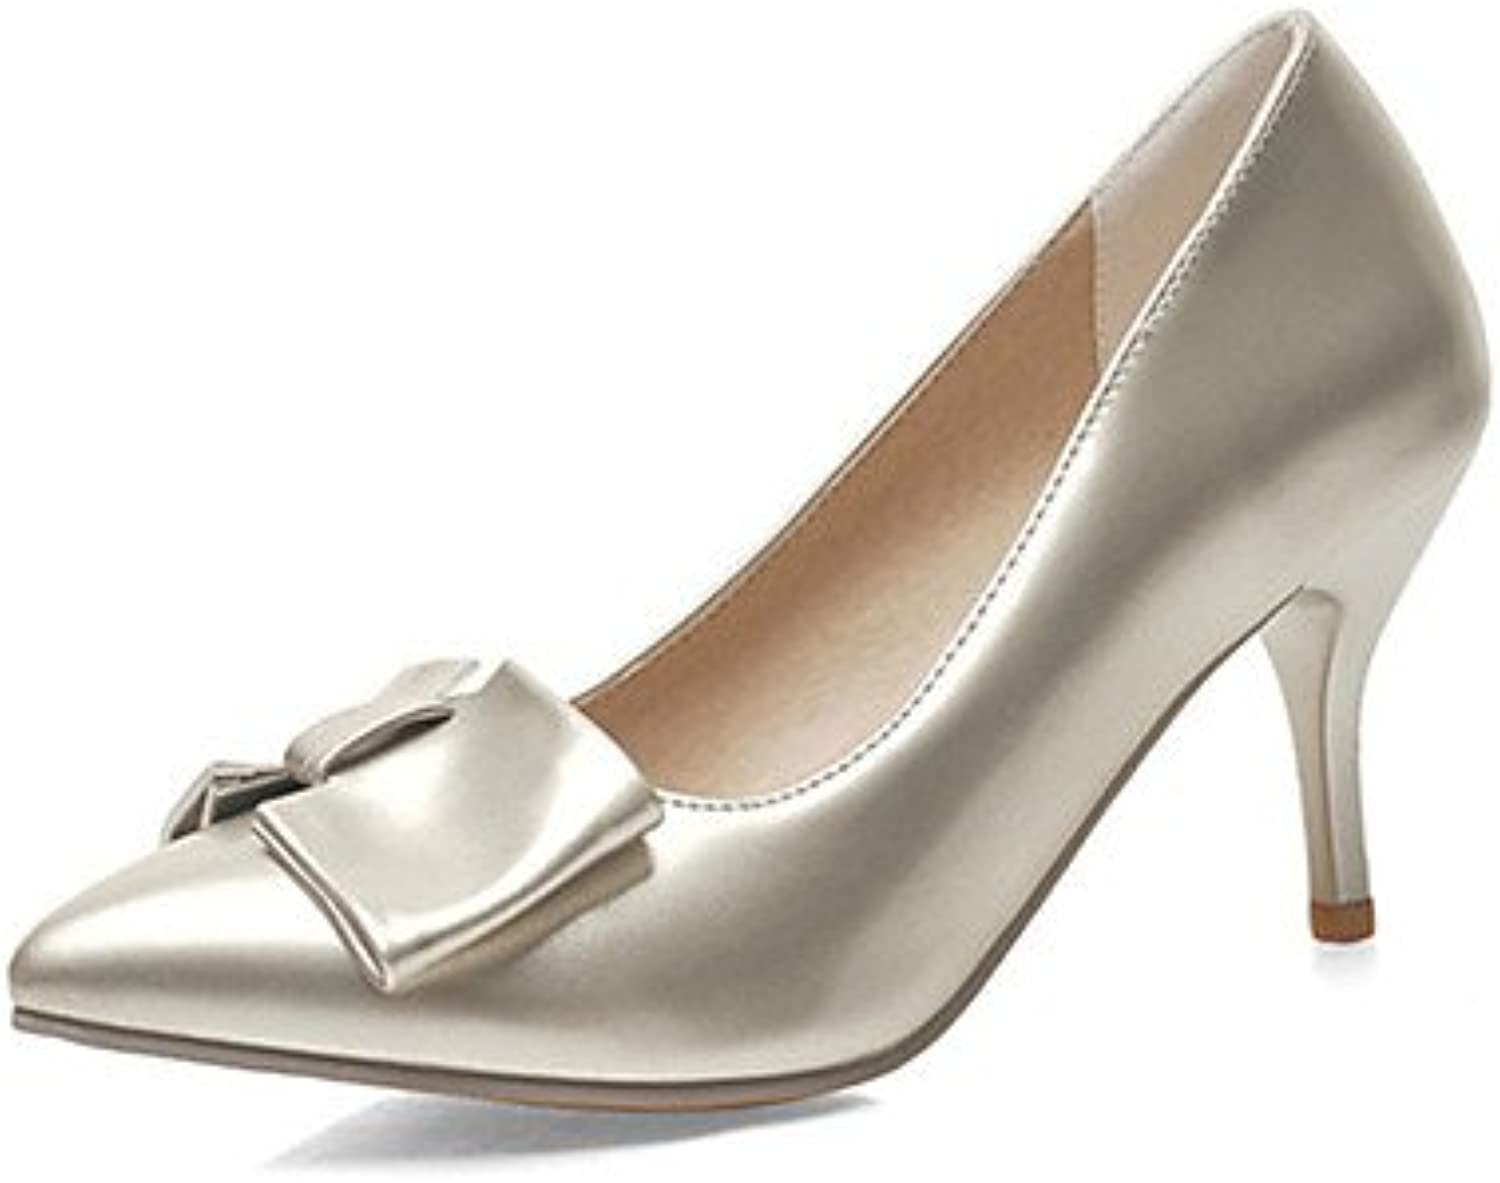 Zormey Women'S Heels Spring Summer Fall Winter Club Shoes Comfort Patent Leather Wedding Office &Amp; Career Dress...